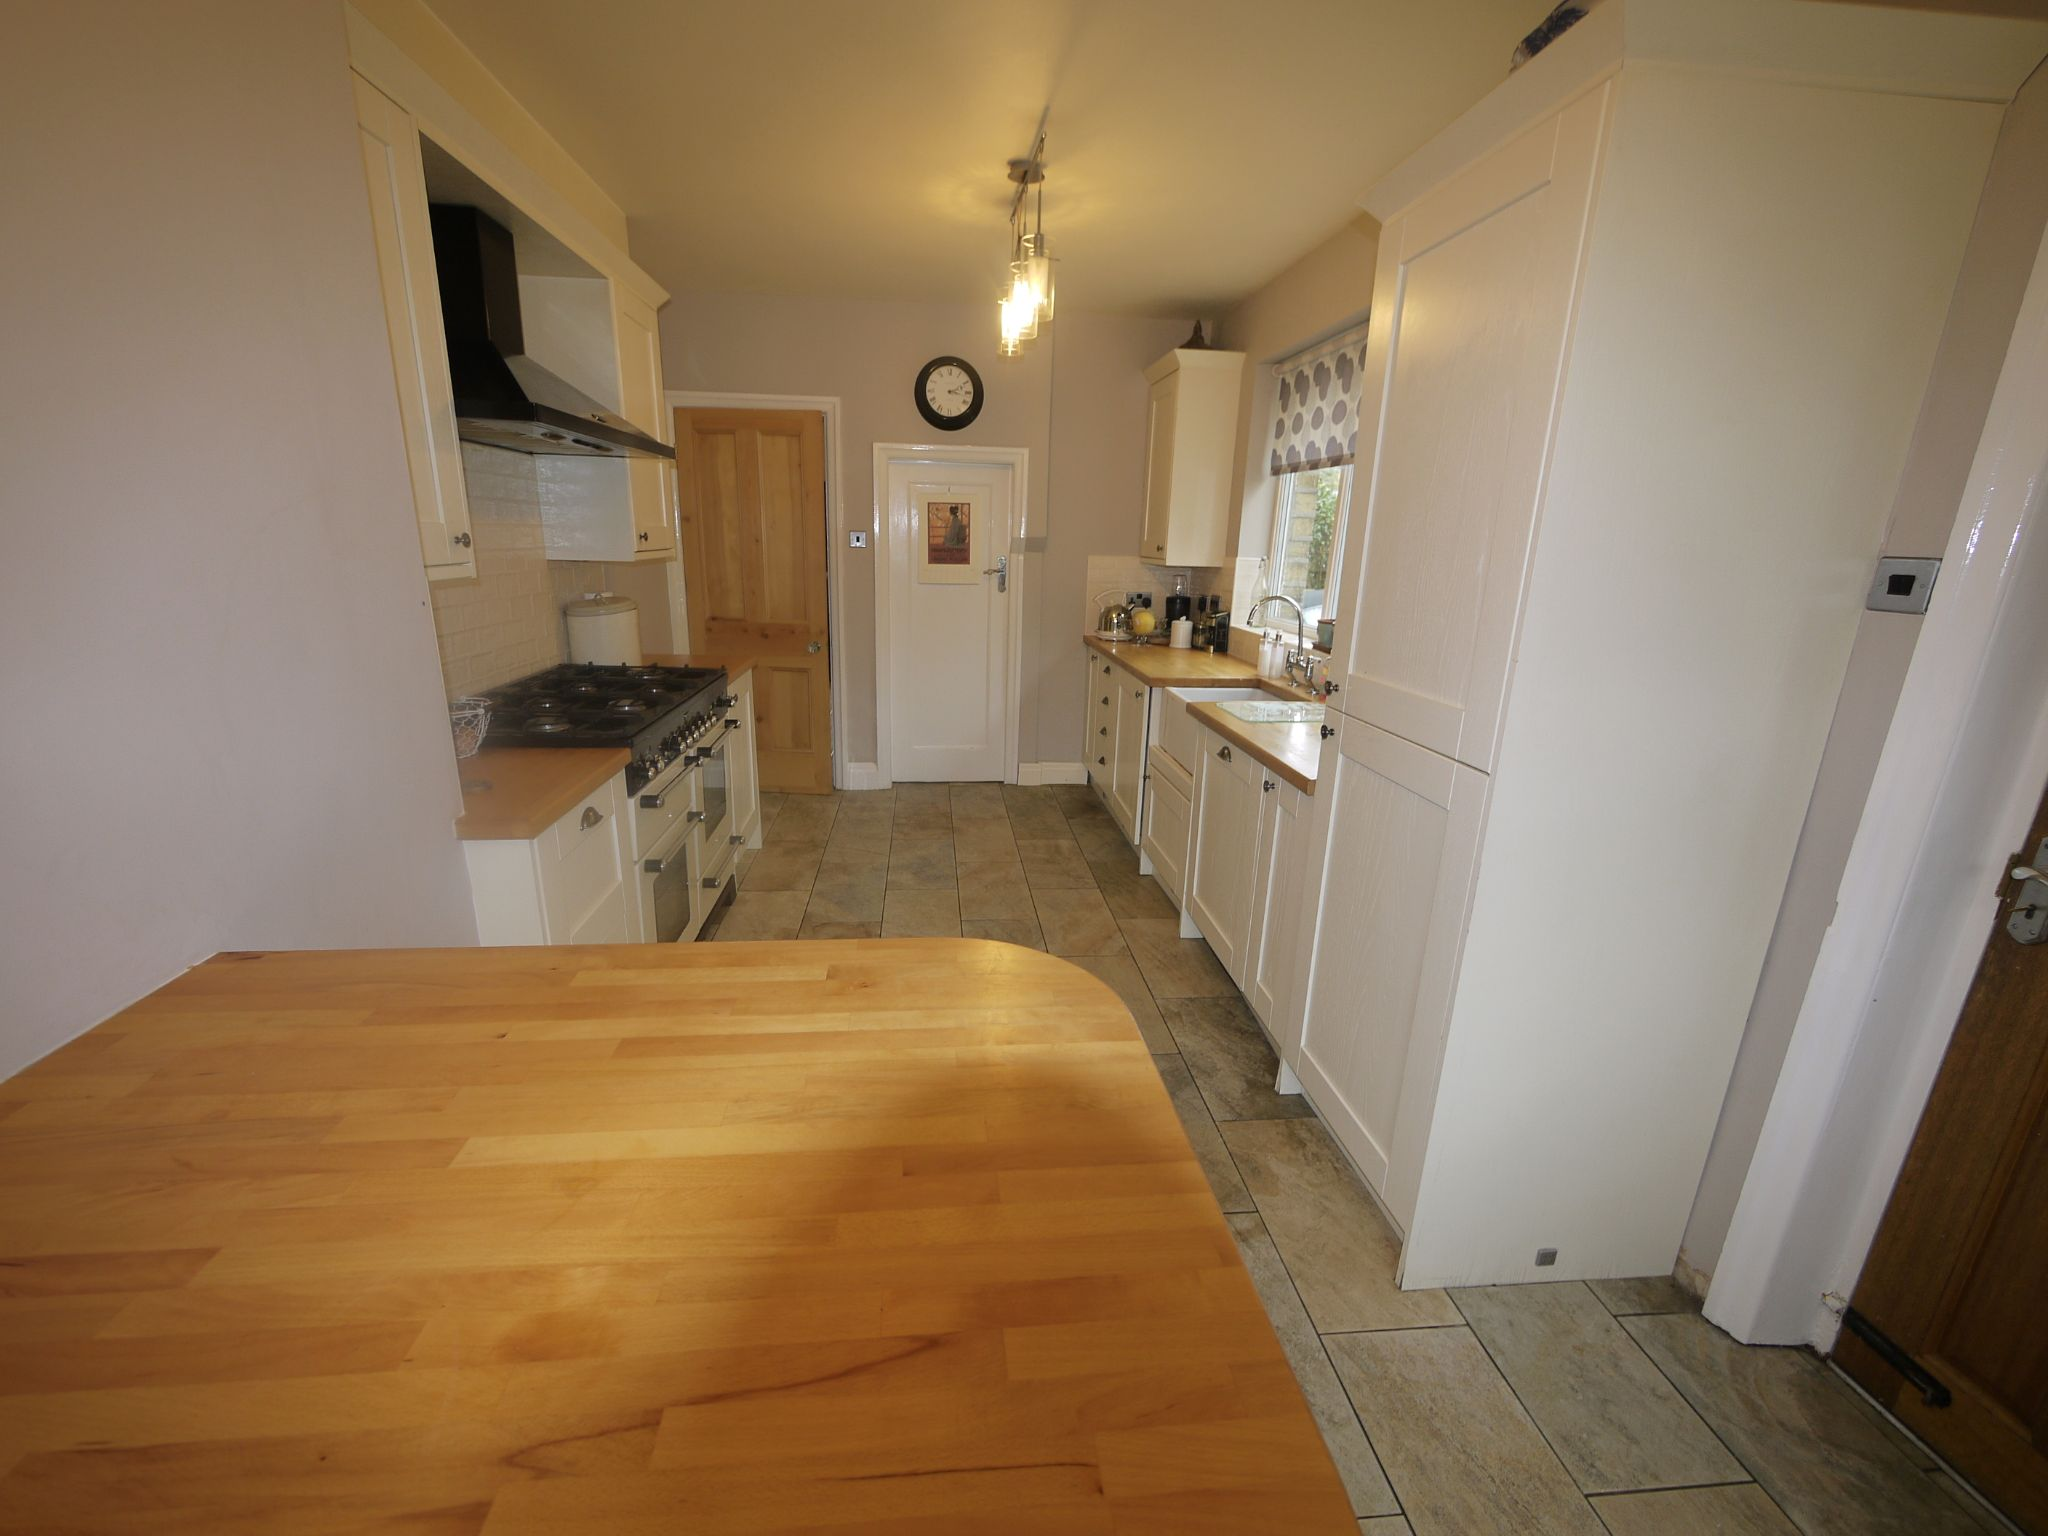 4 bedroom semi-detached house SSTC in Halifax - Kitchen 3.